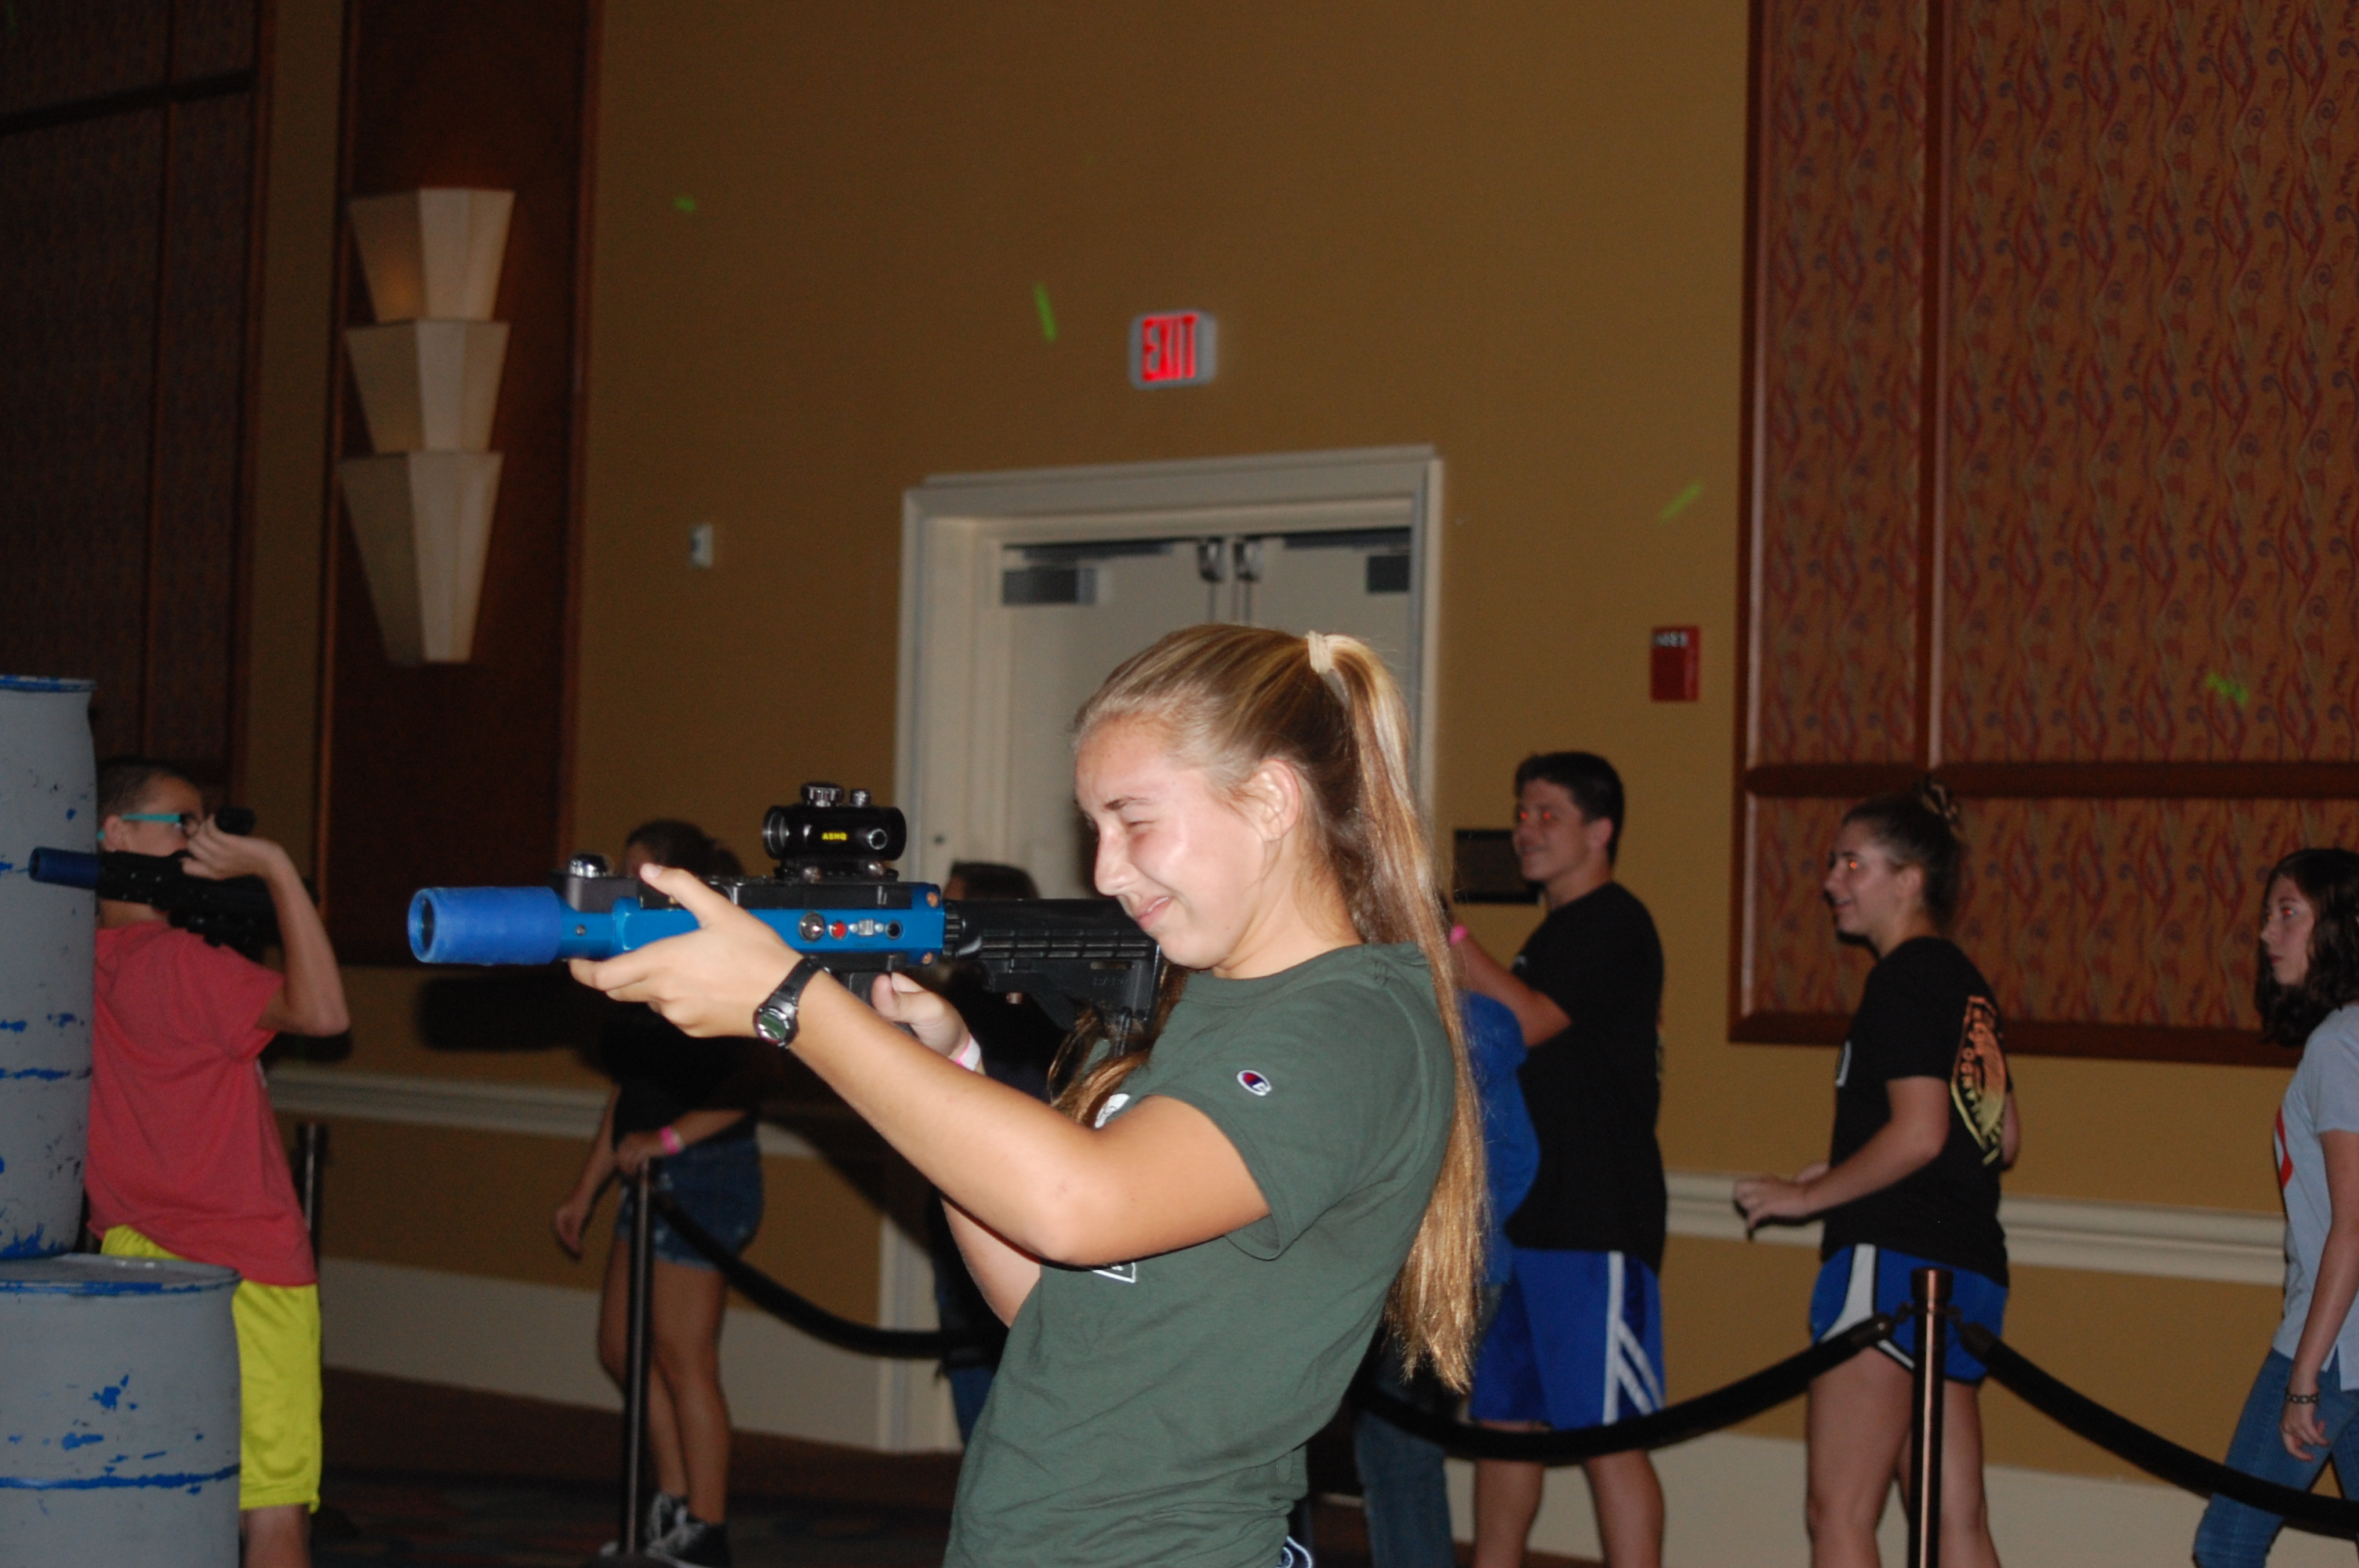 Mobile Laser Tag in St. Pete, FL